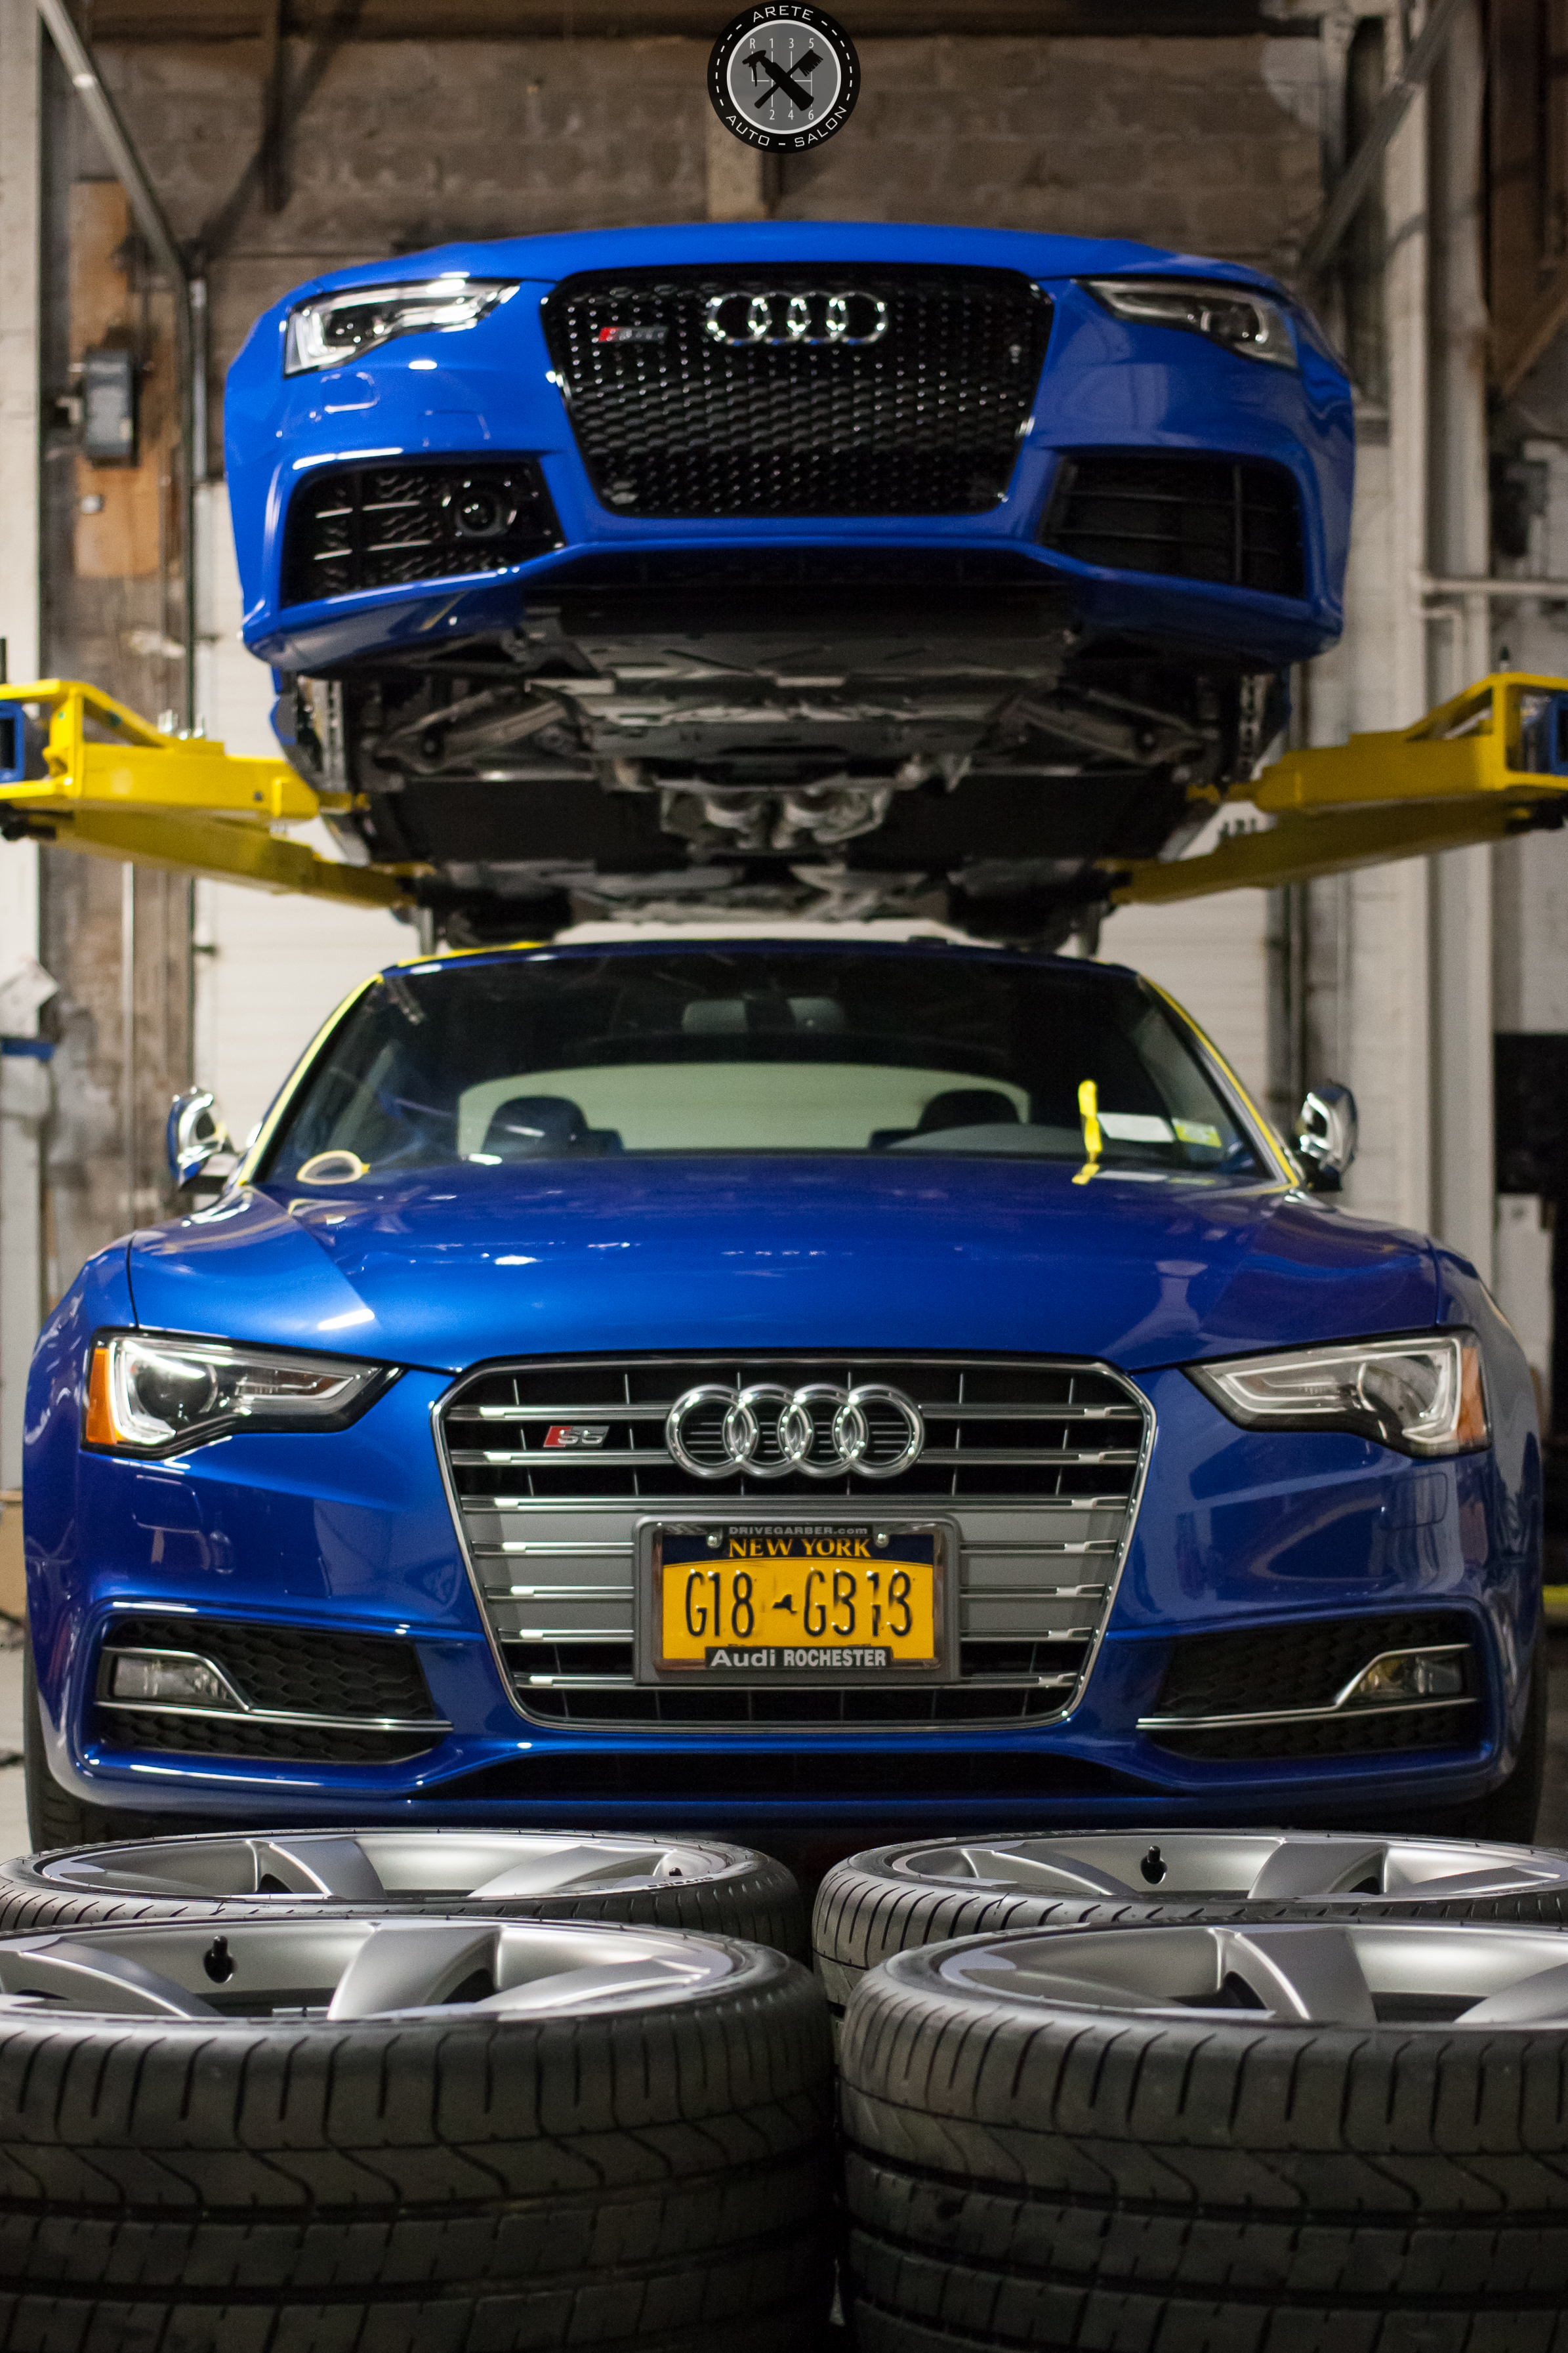 The S5 in the foreground was also in for Cquartz Finest and wheel/caliper coating. This great shot shows off the true beauty of both of these cars.